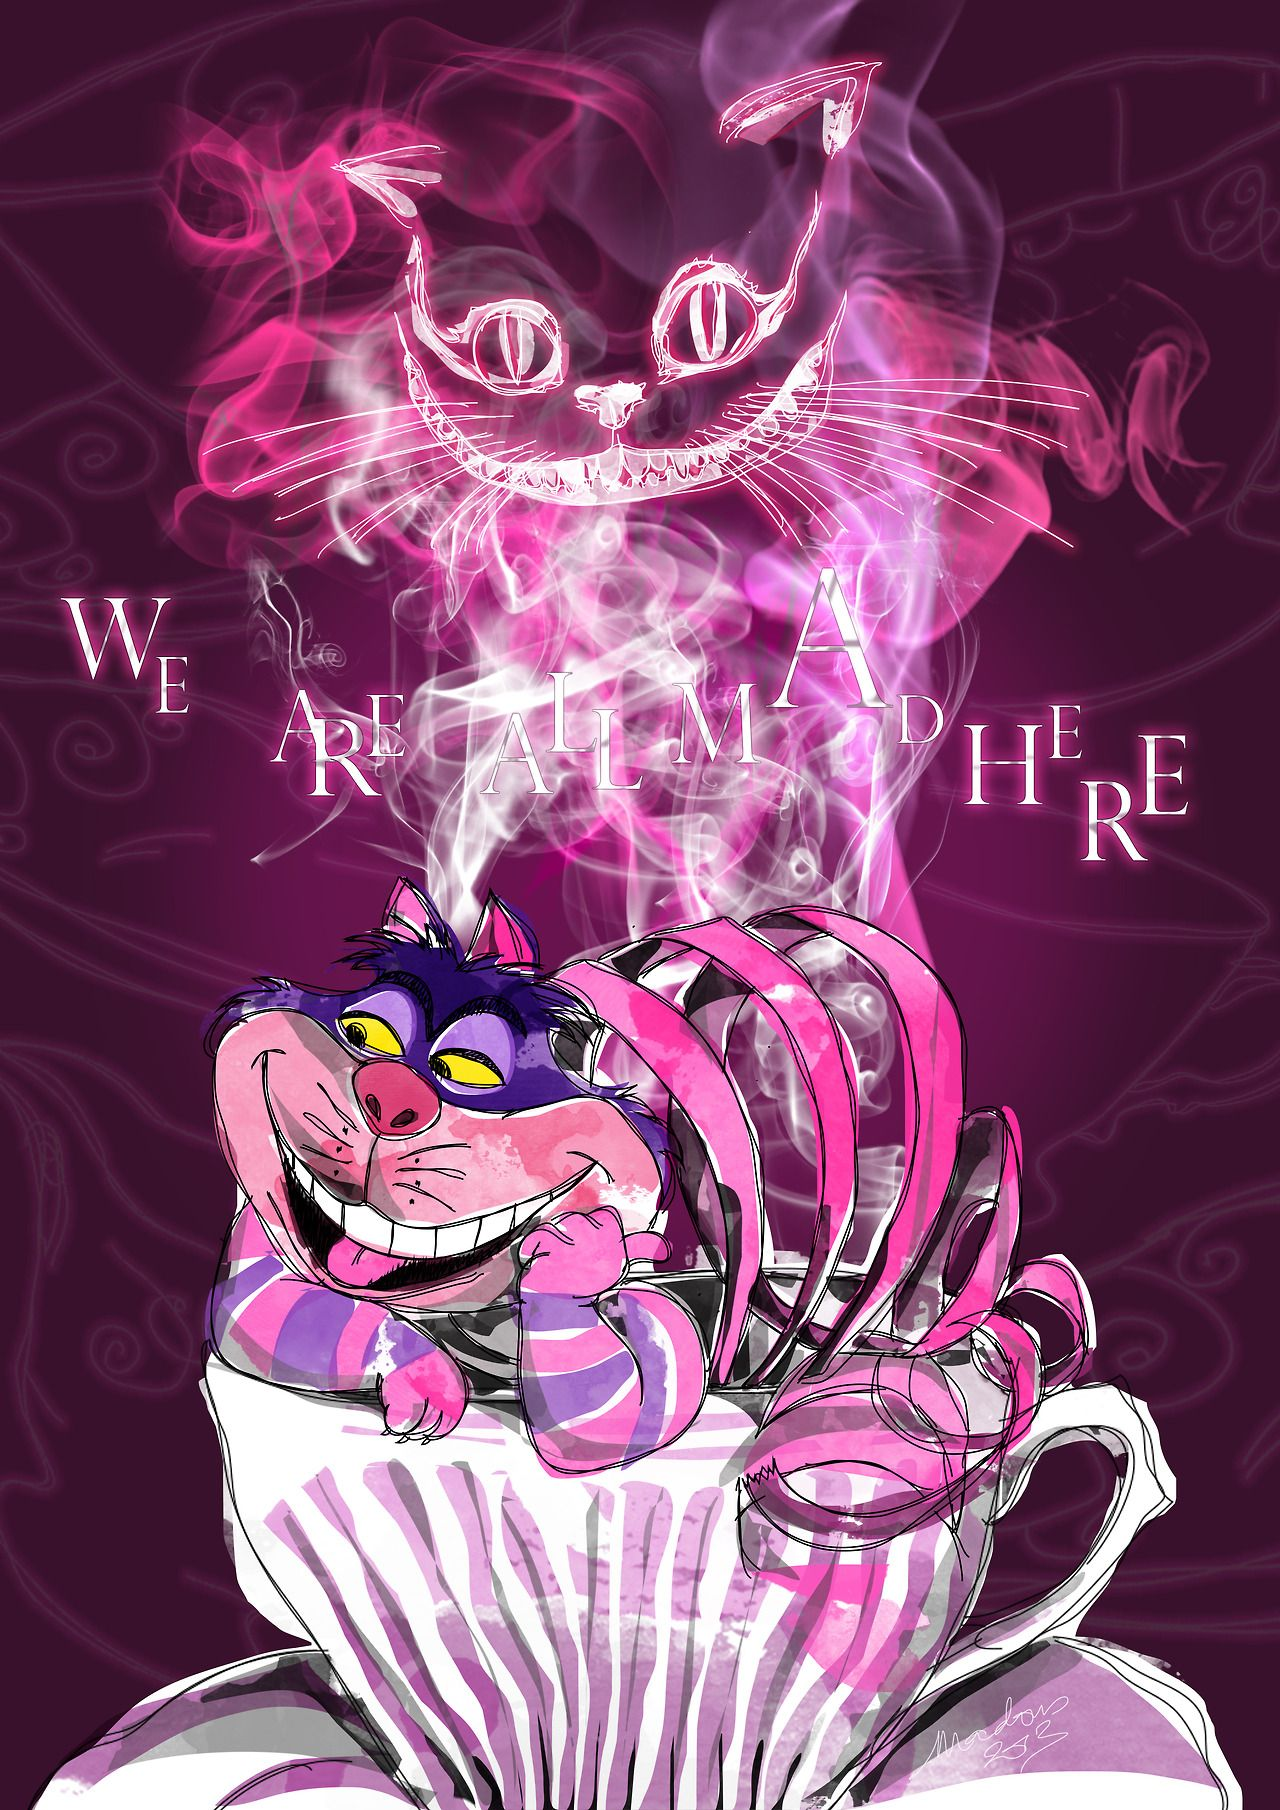 We Re All Mad Here This Is Great My Next Tattoo Idea